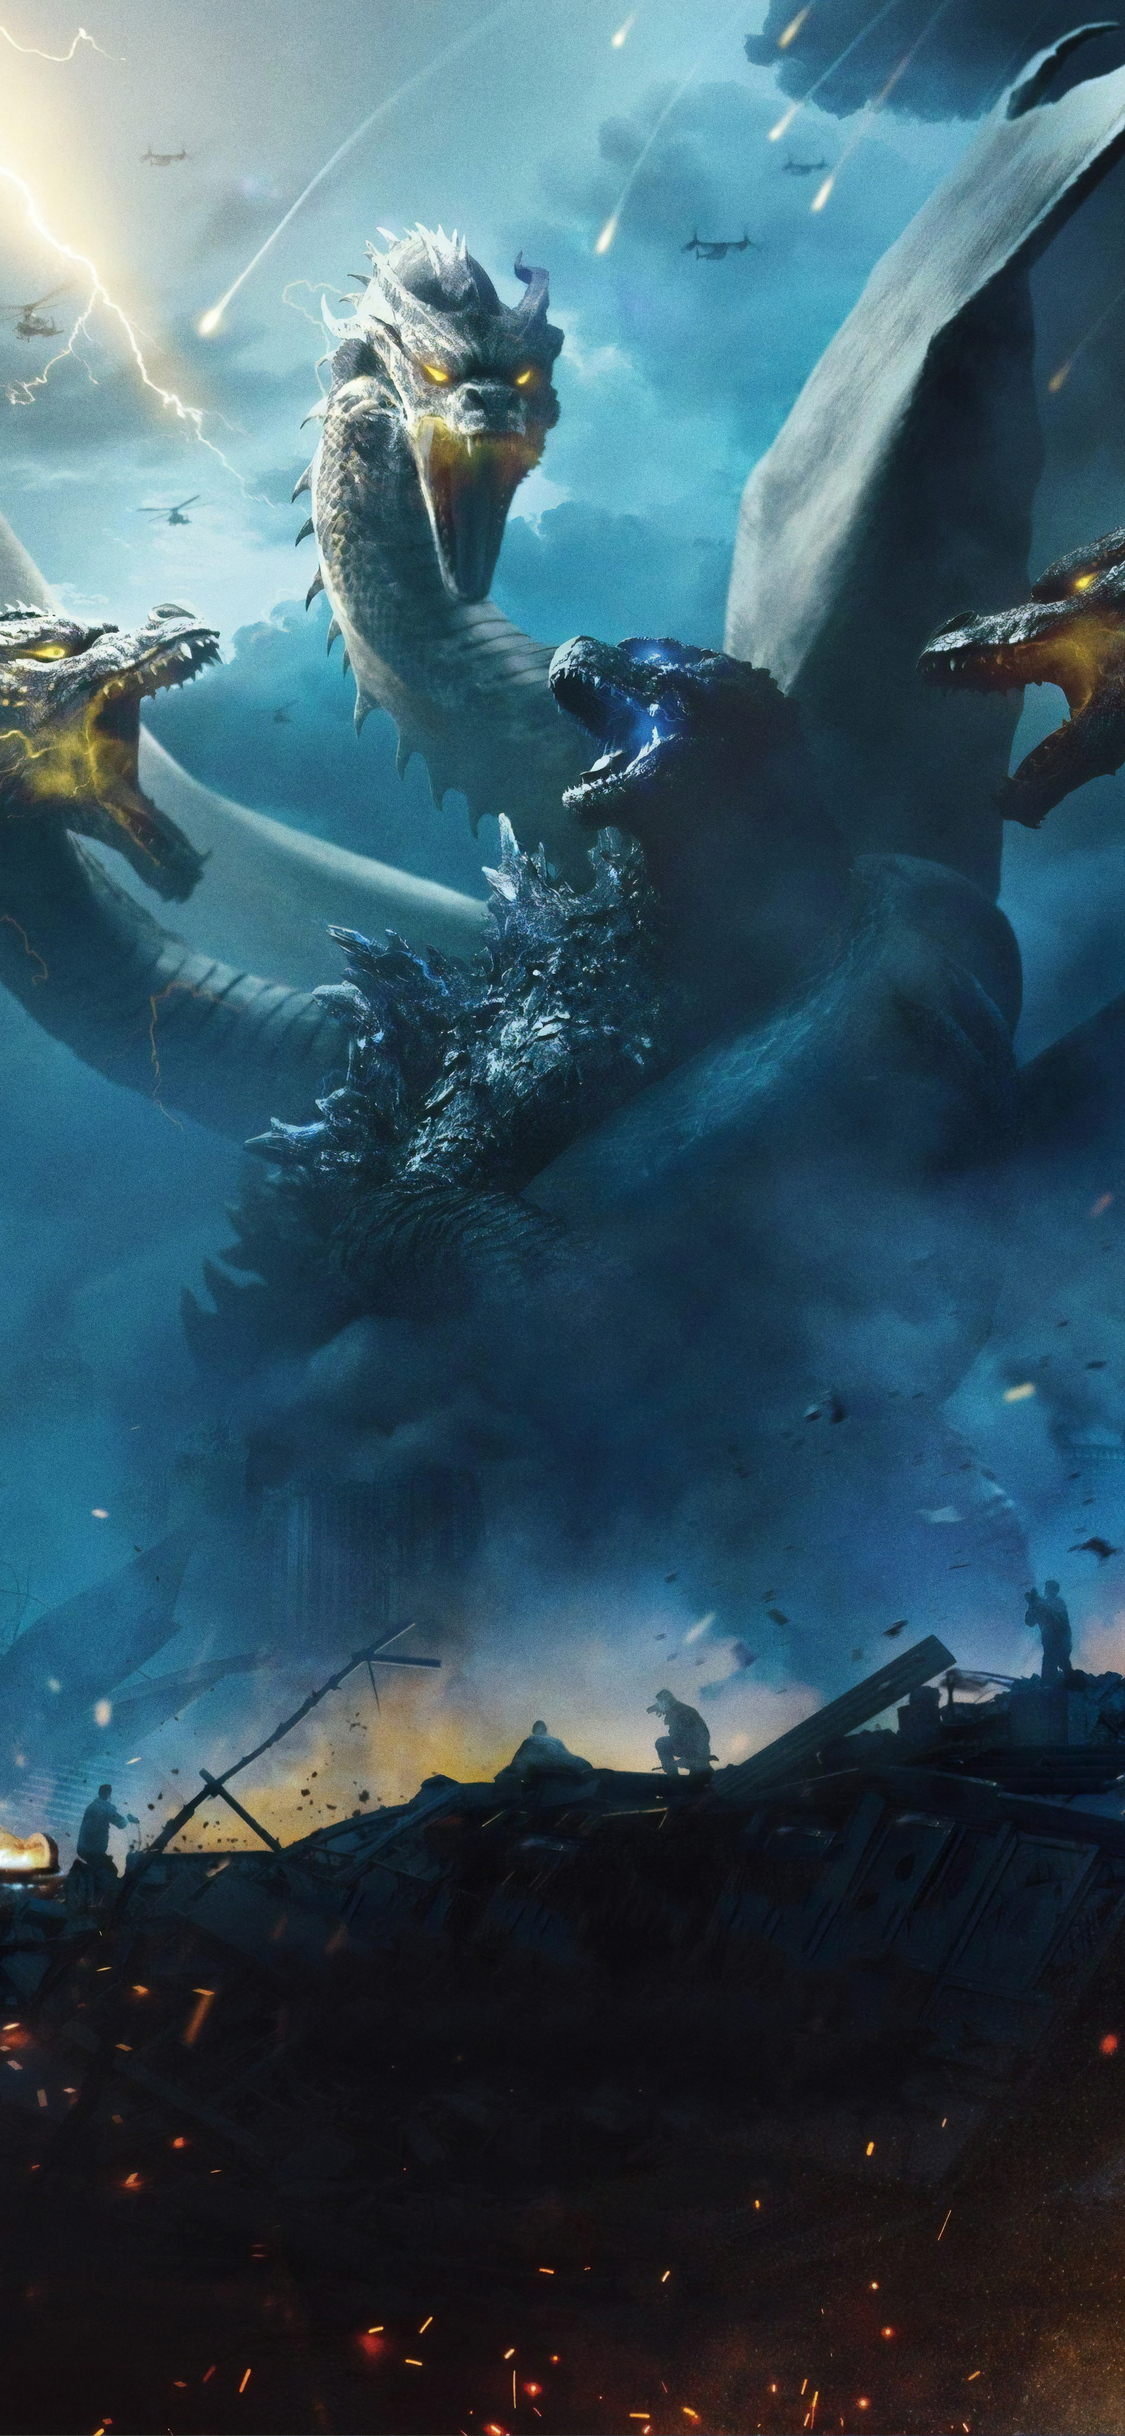 1125x2436 Godzilla King Of The Monsters 4k 2019 Iphone Xs